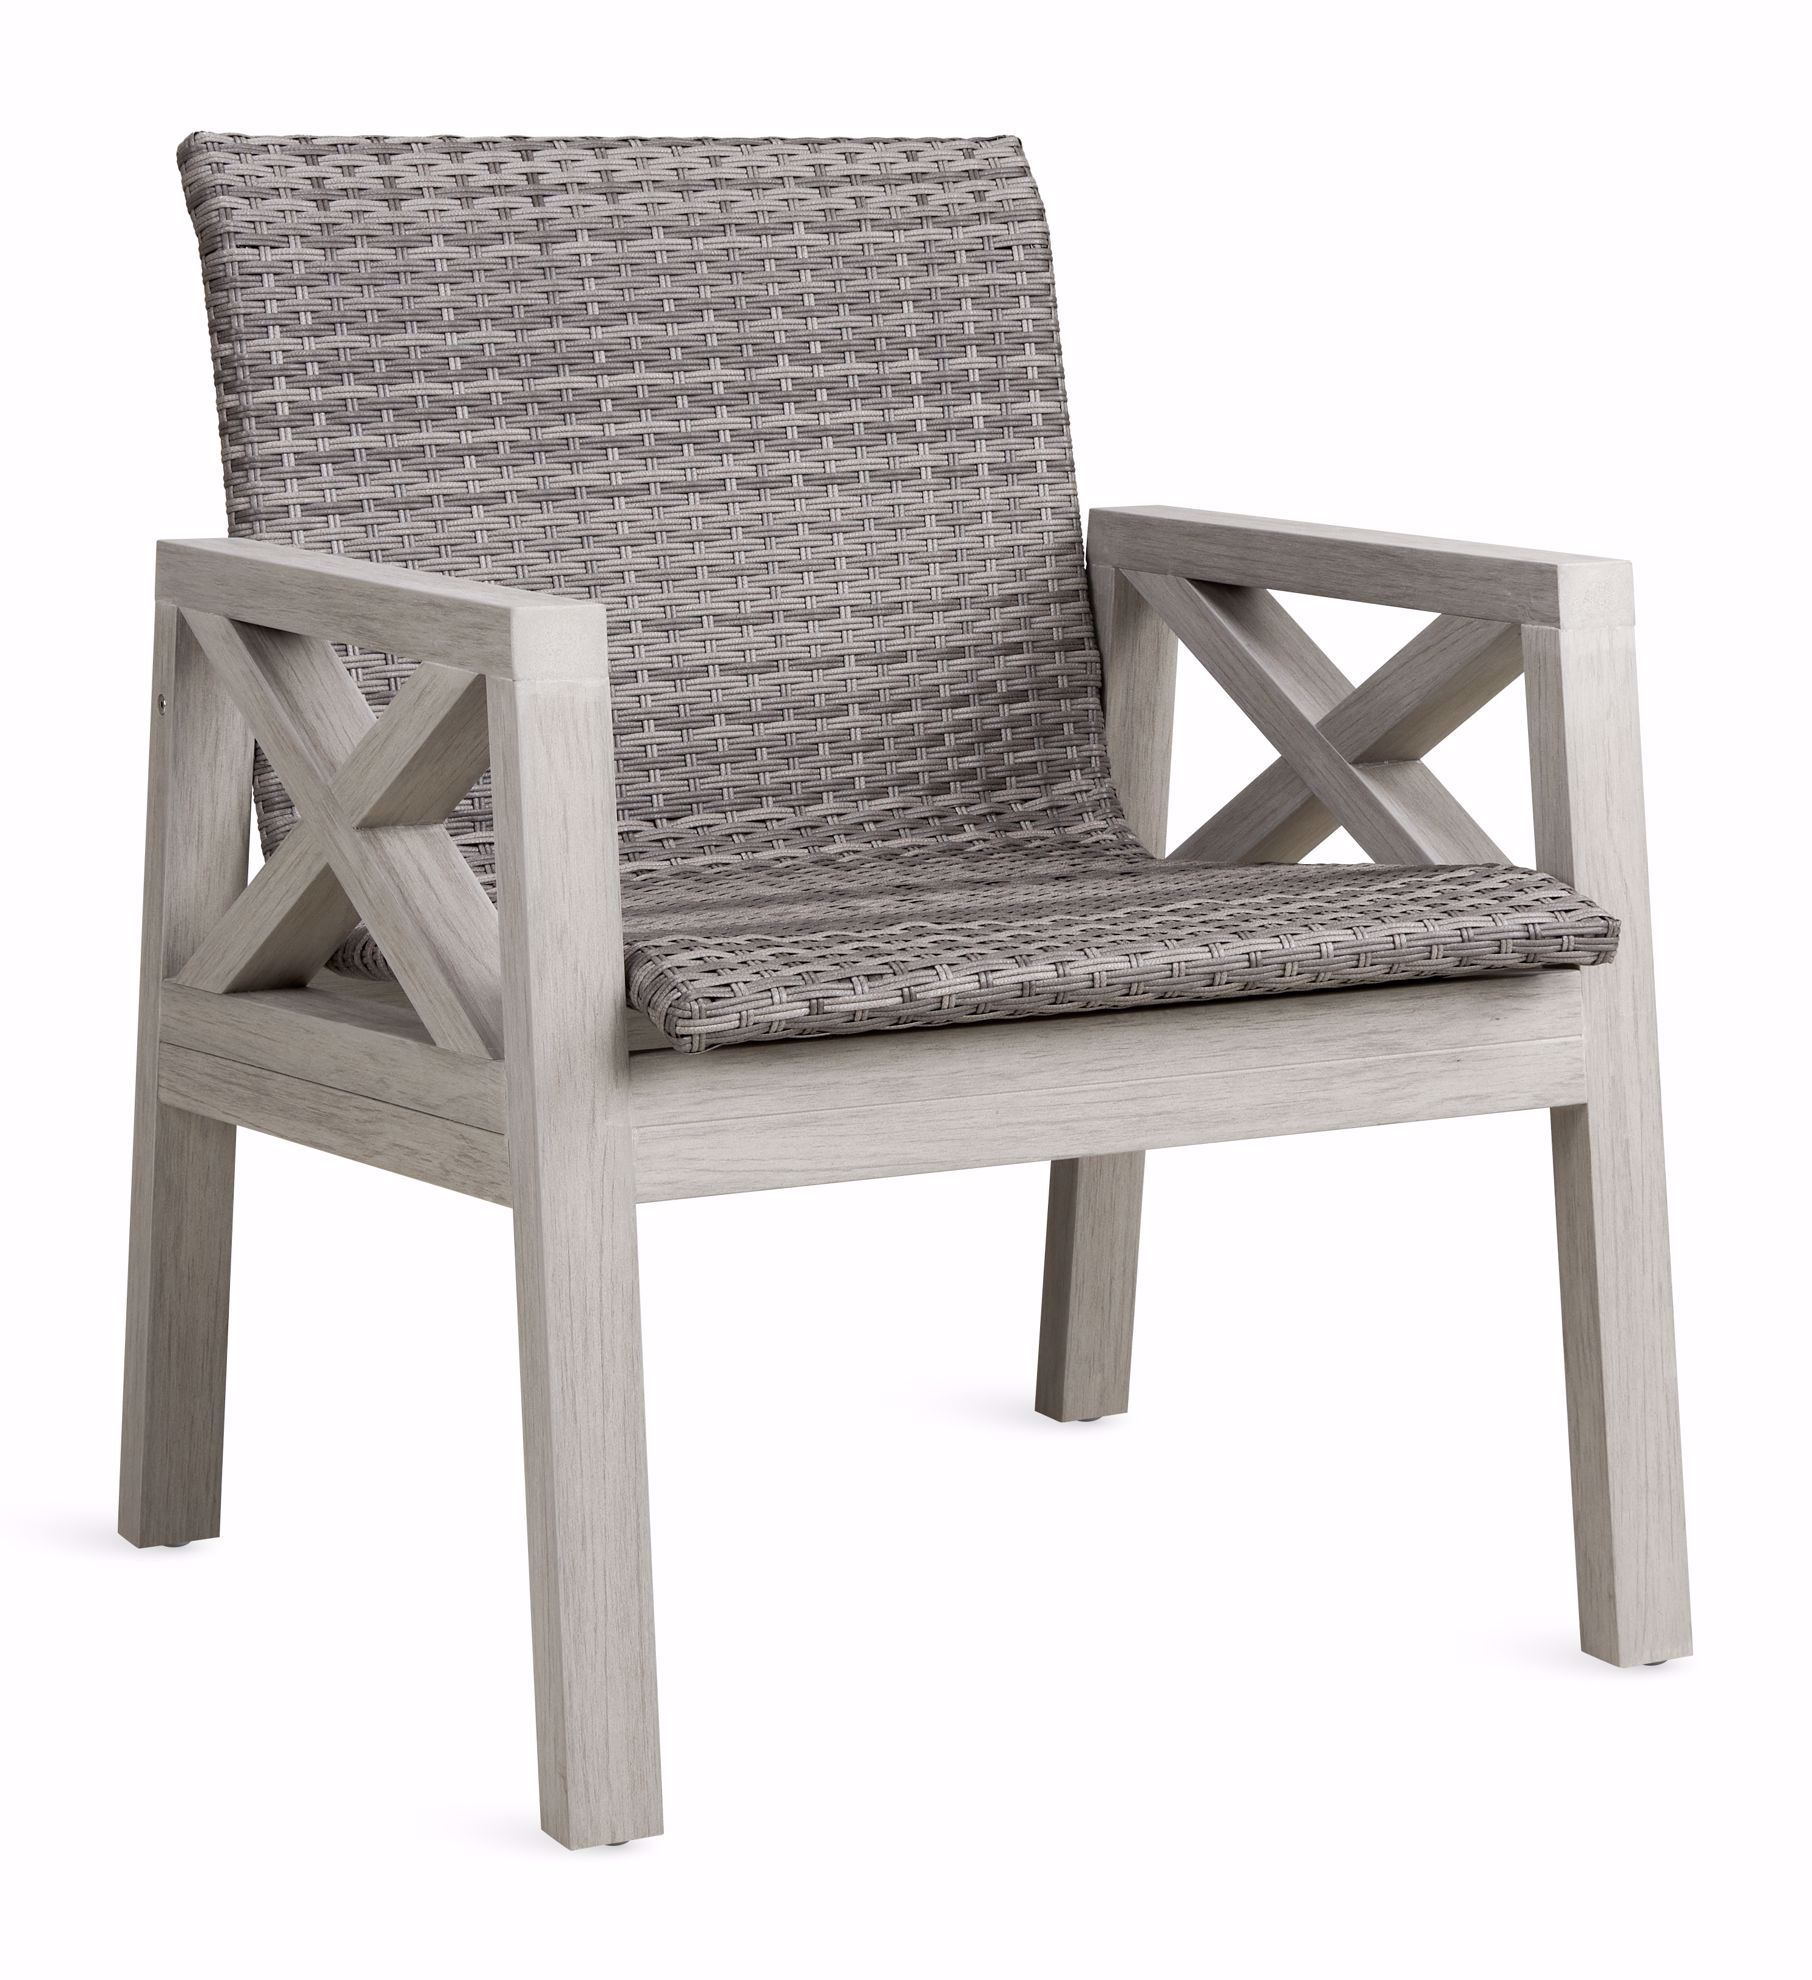 Picture of Bryce Patio Chair